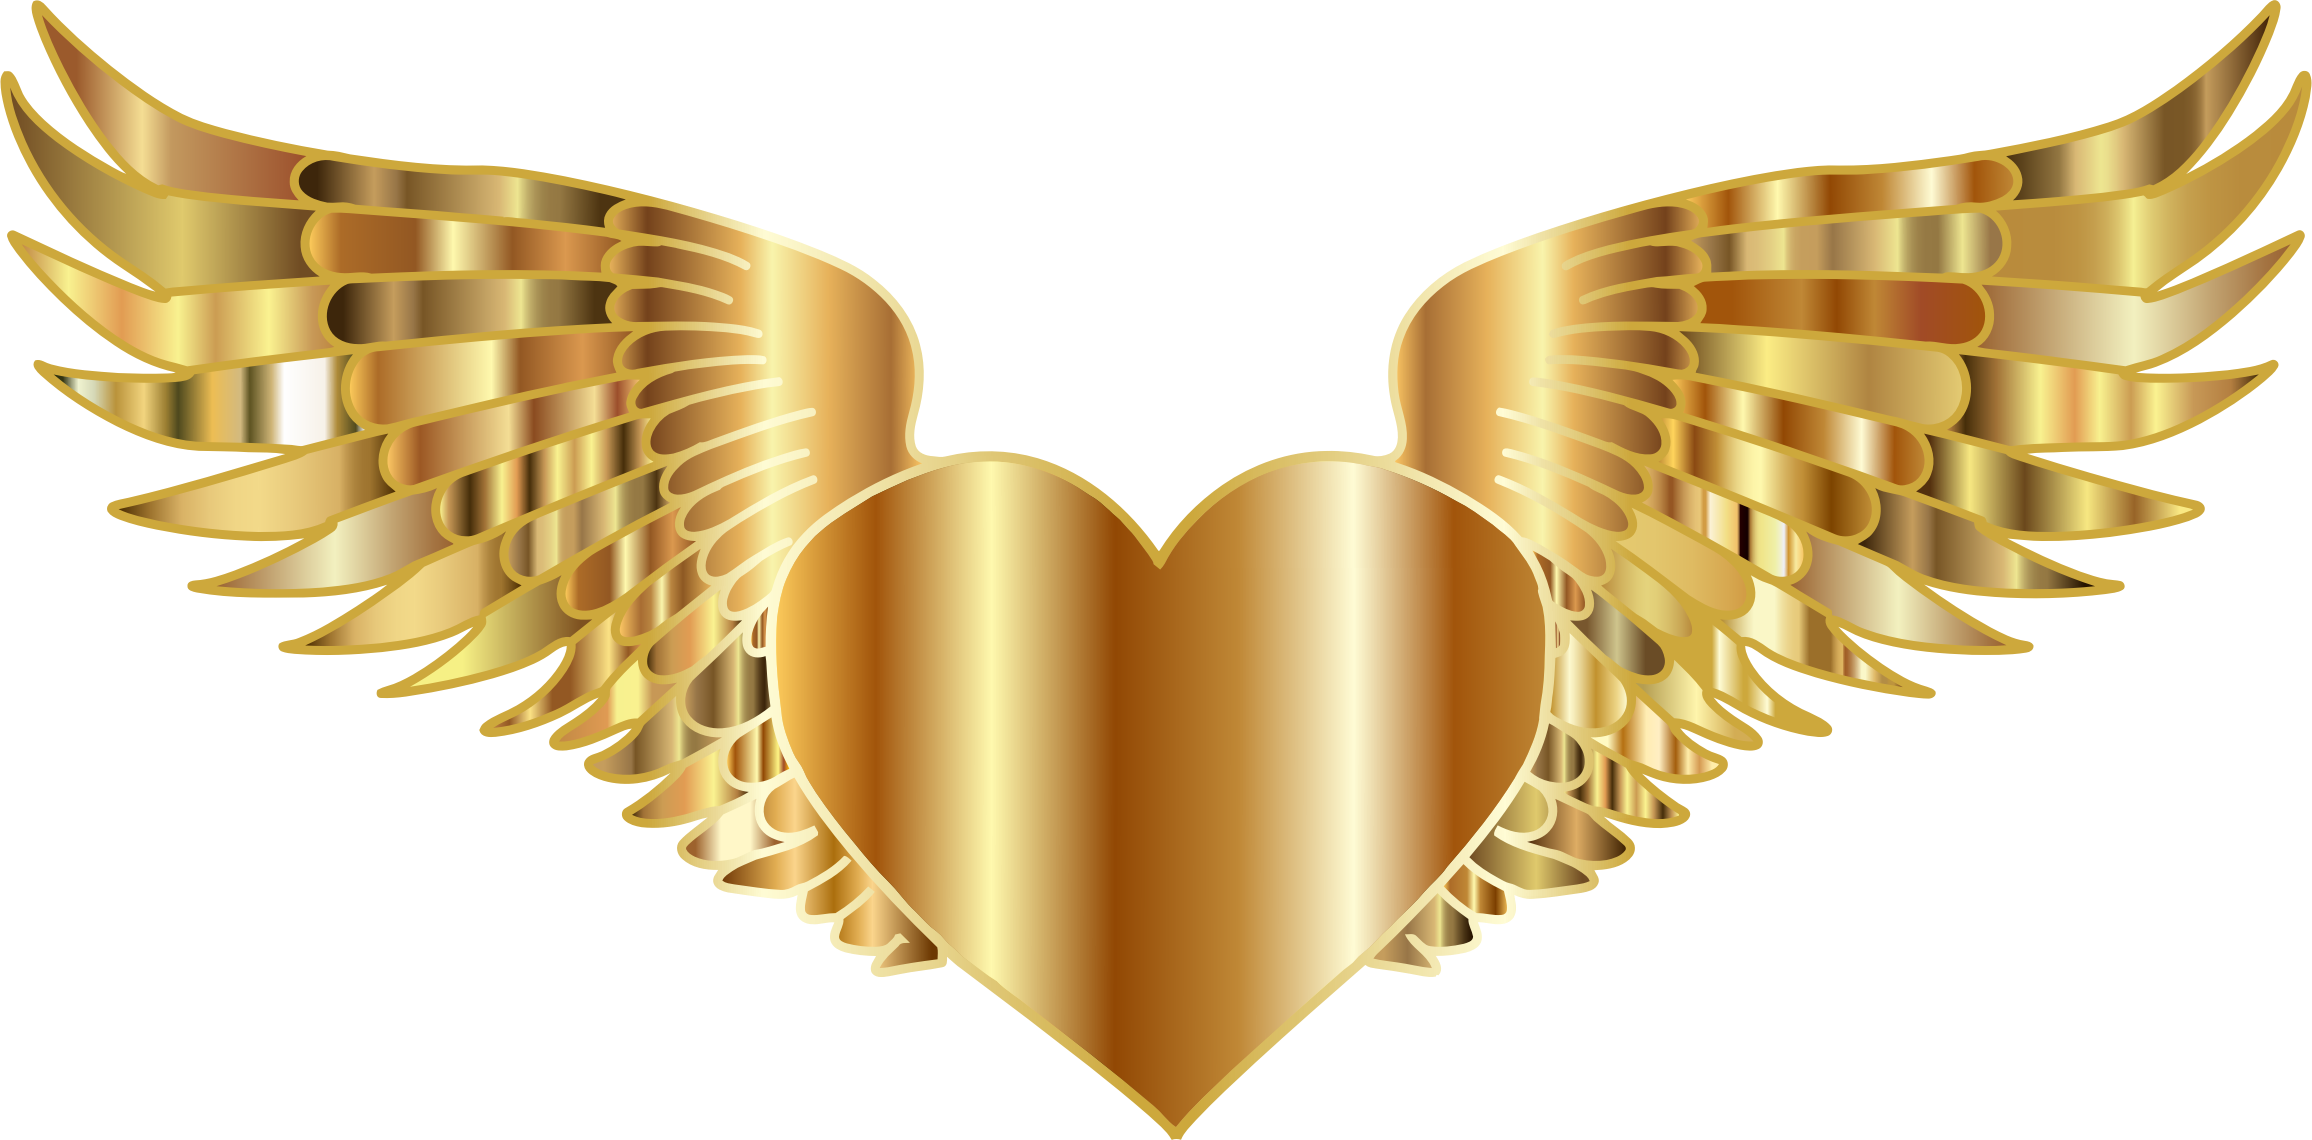 Golden Flying Heart by GDJ